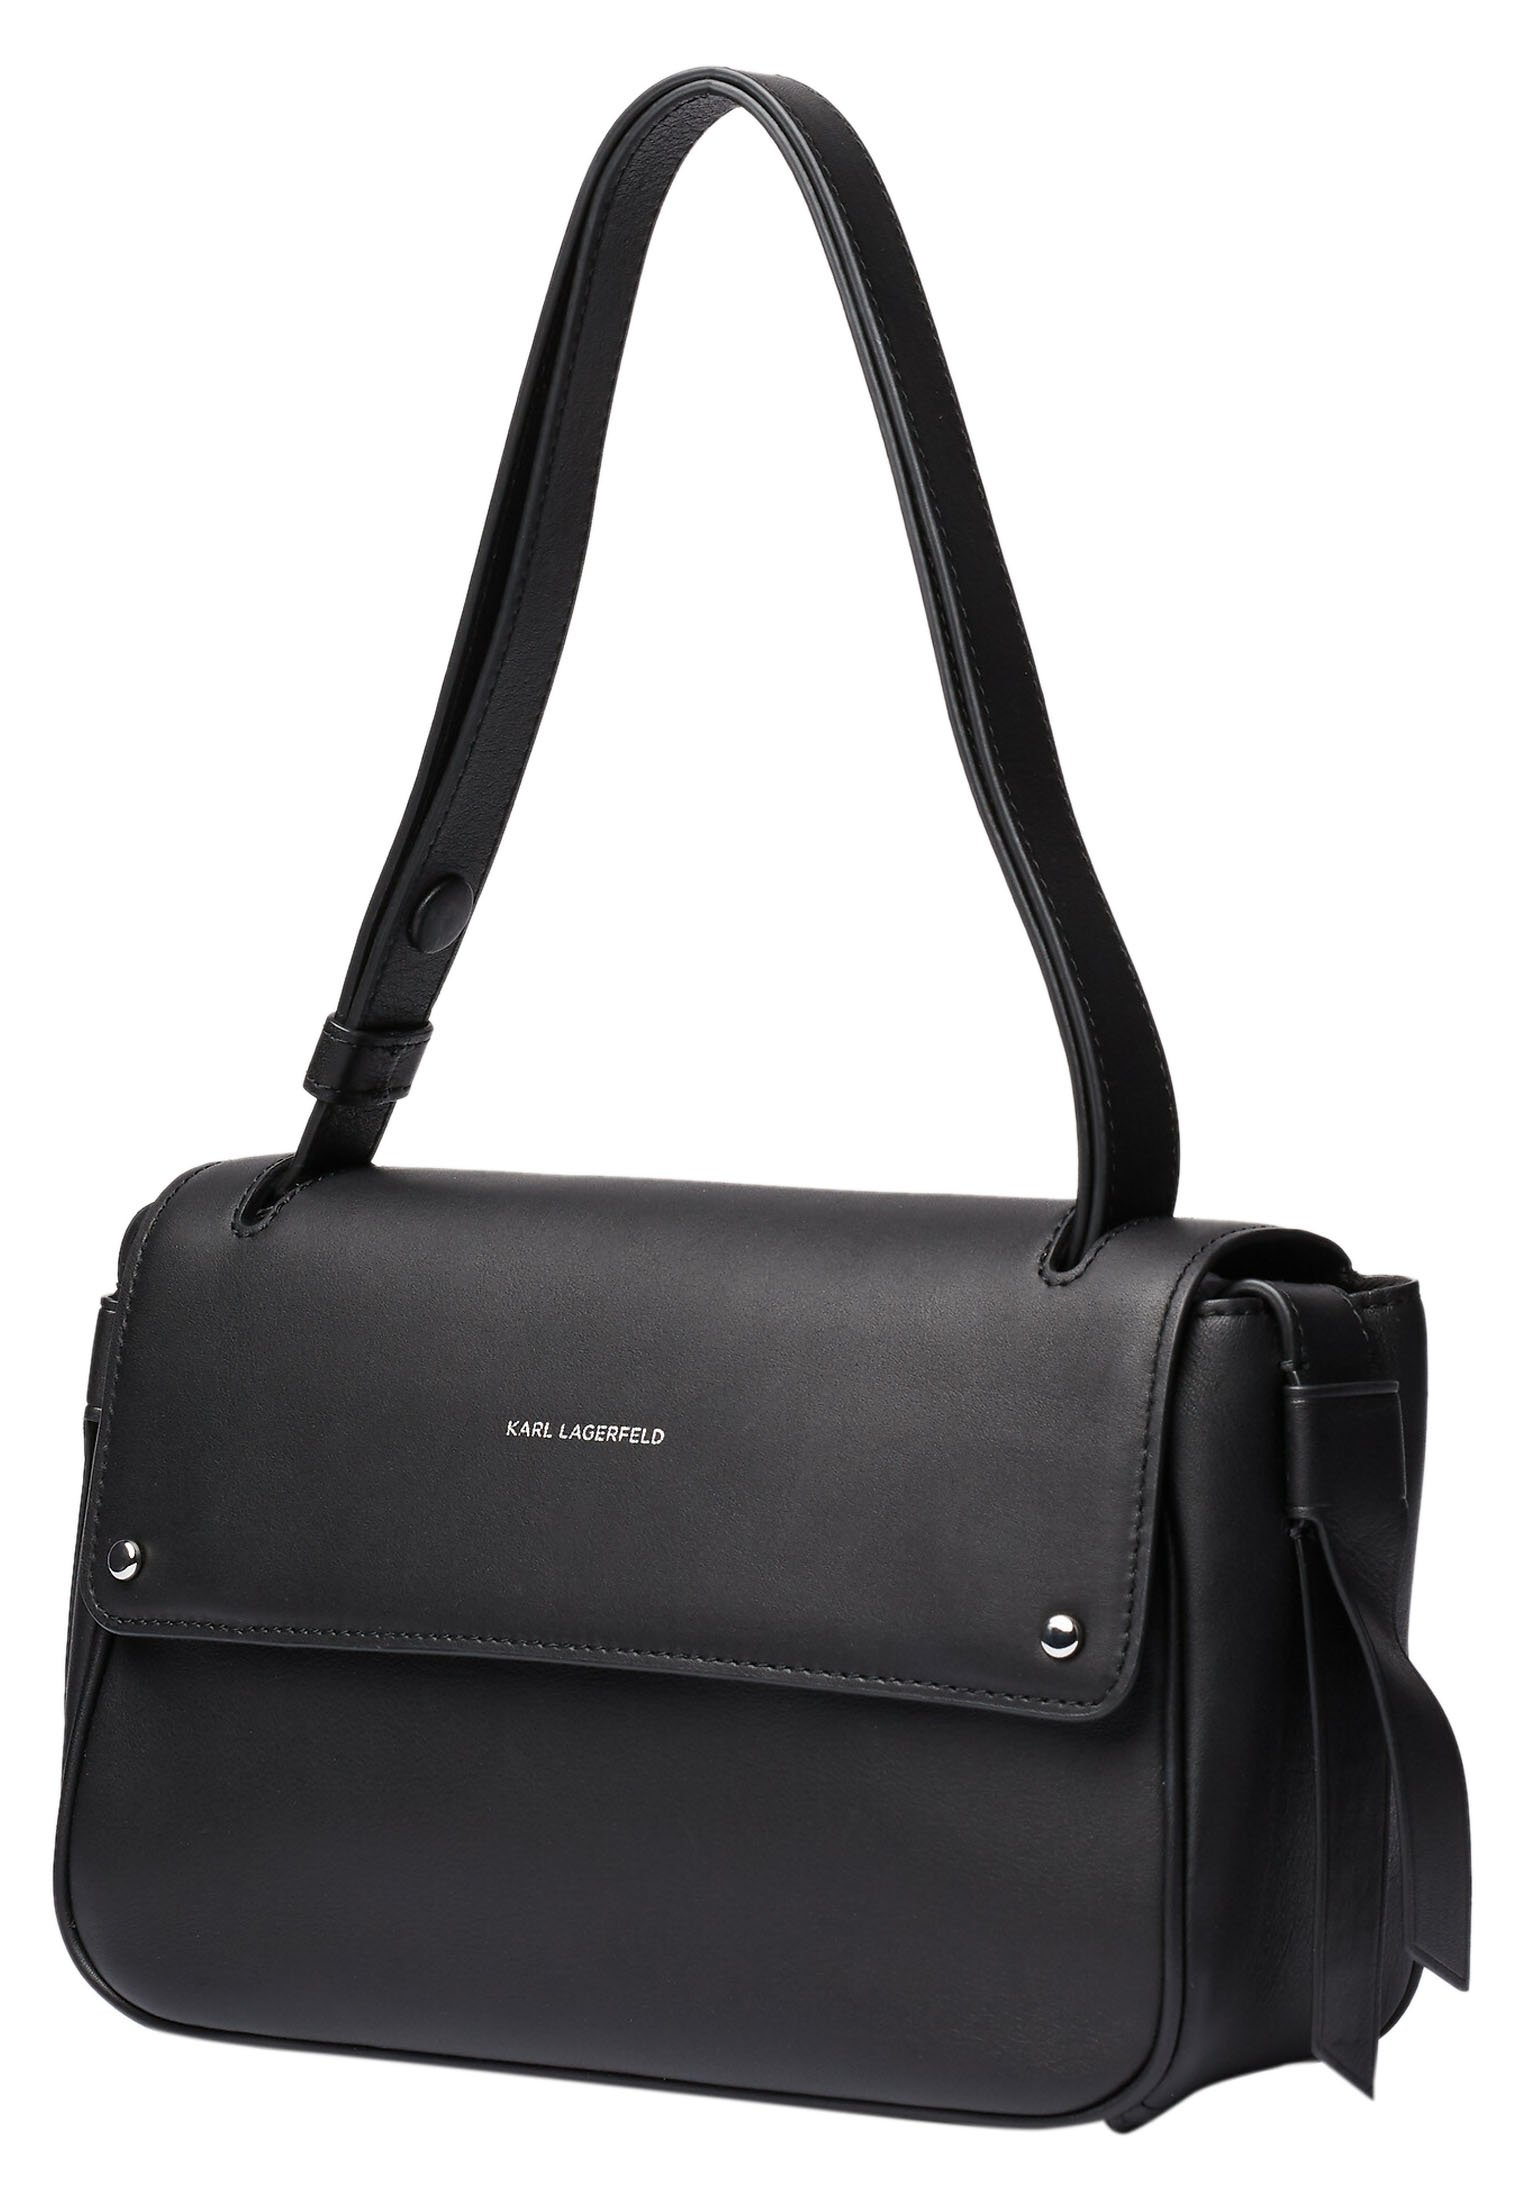 KARL LAGERFELD Sac à main - black